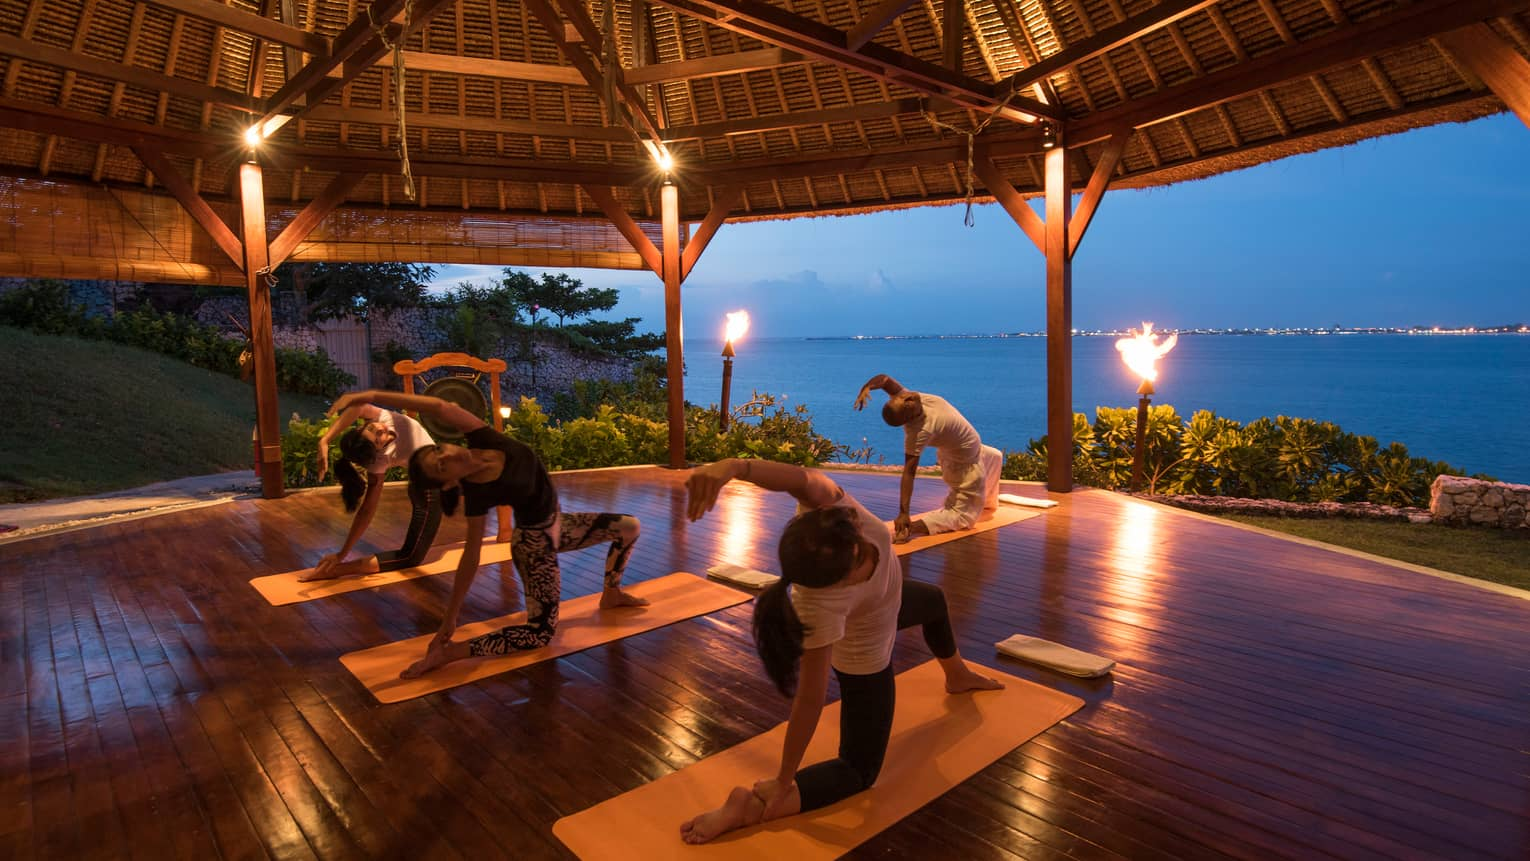 Four people outstretched in yoga pose on mats in torch-lit gazebo for Night Fire Yoga class